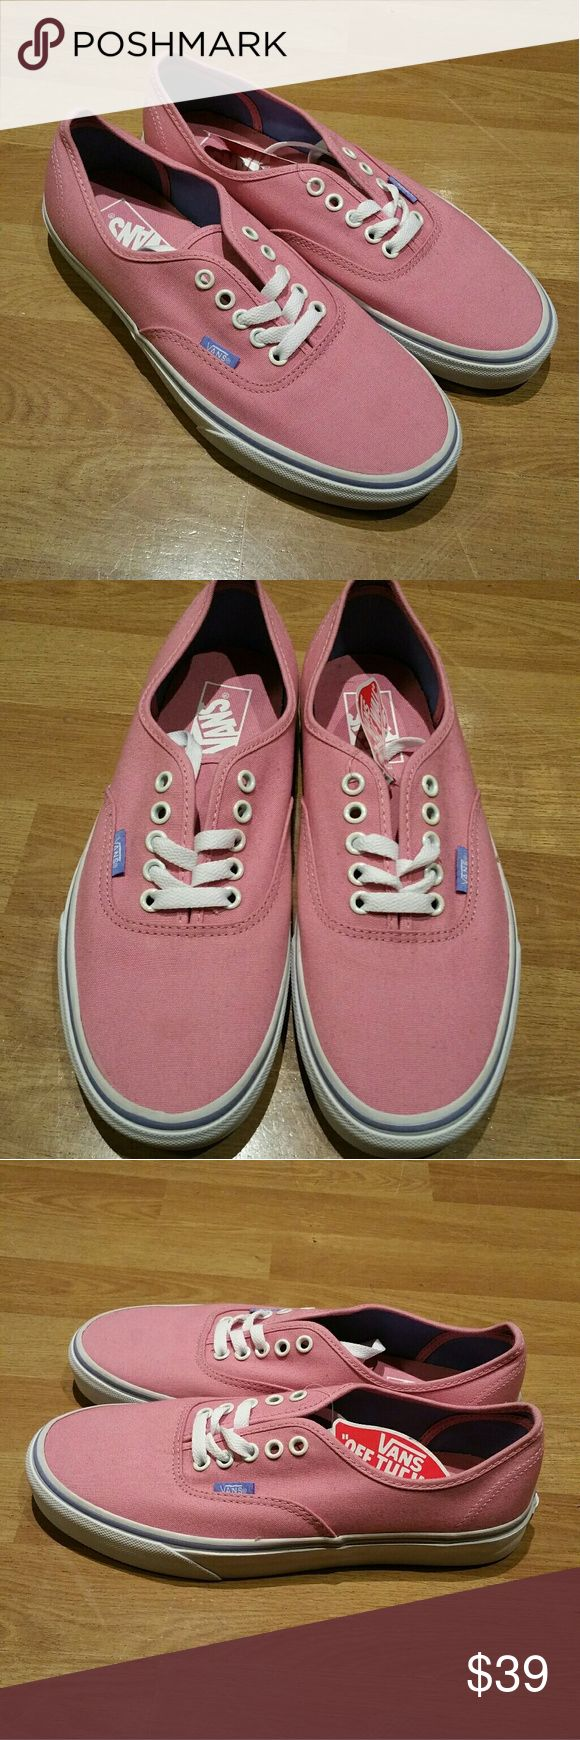 Womens Vans sneakers Brand new. Size 9.5. Never worn Vans Shoes Sneakers